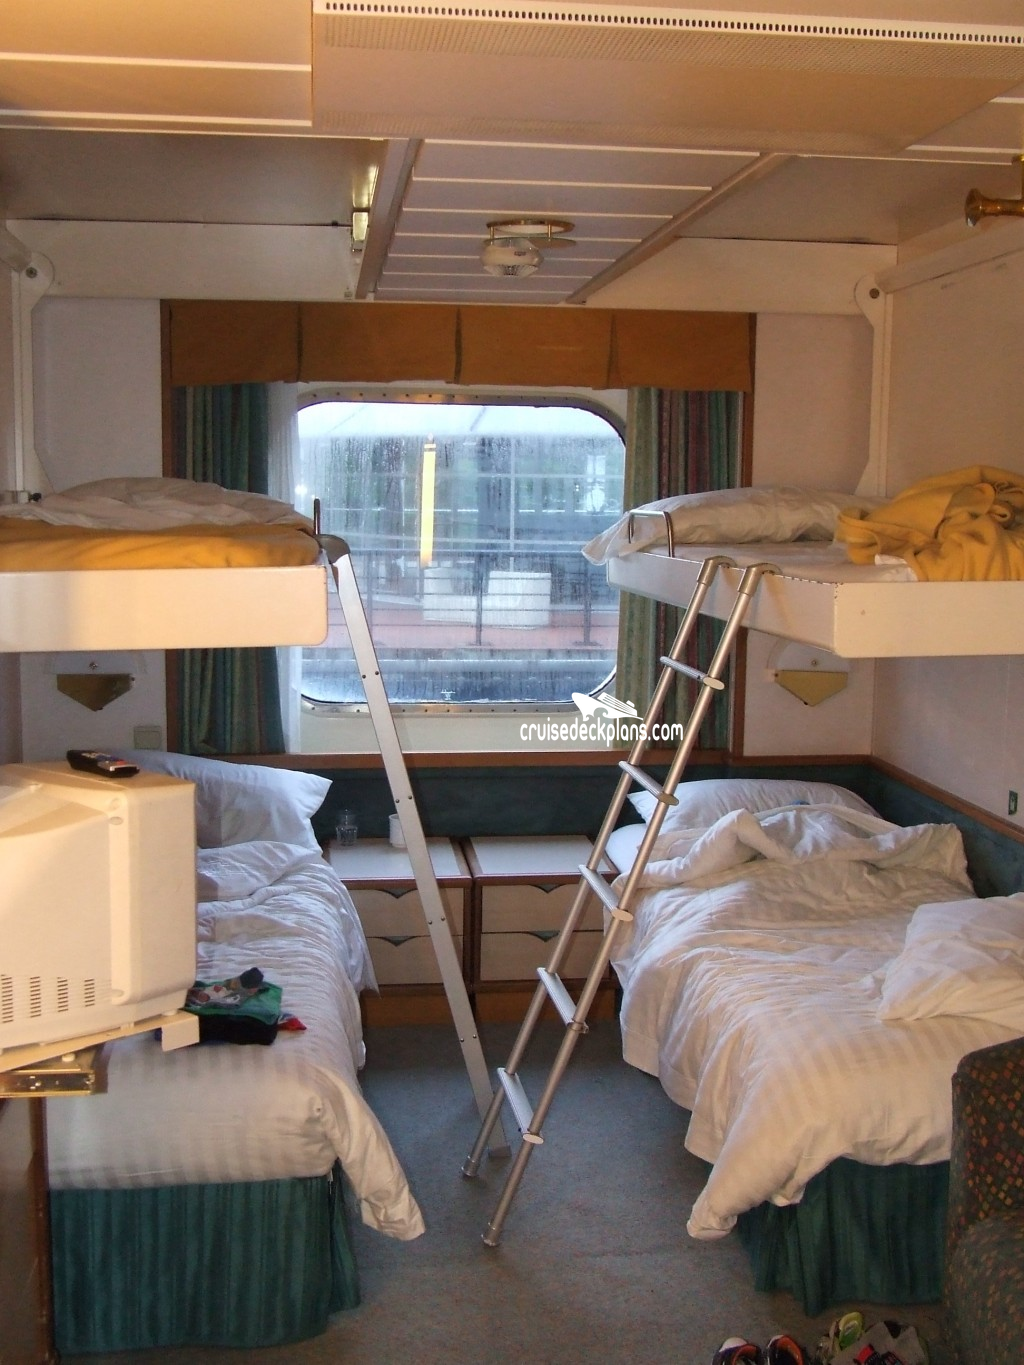 Bunk bed weight limit ikea mydal weight limit eurecipe for Rhapsody of the seas cabins deck 2